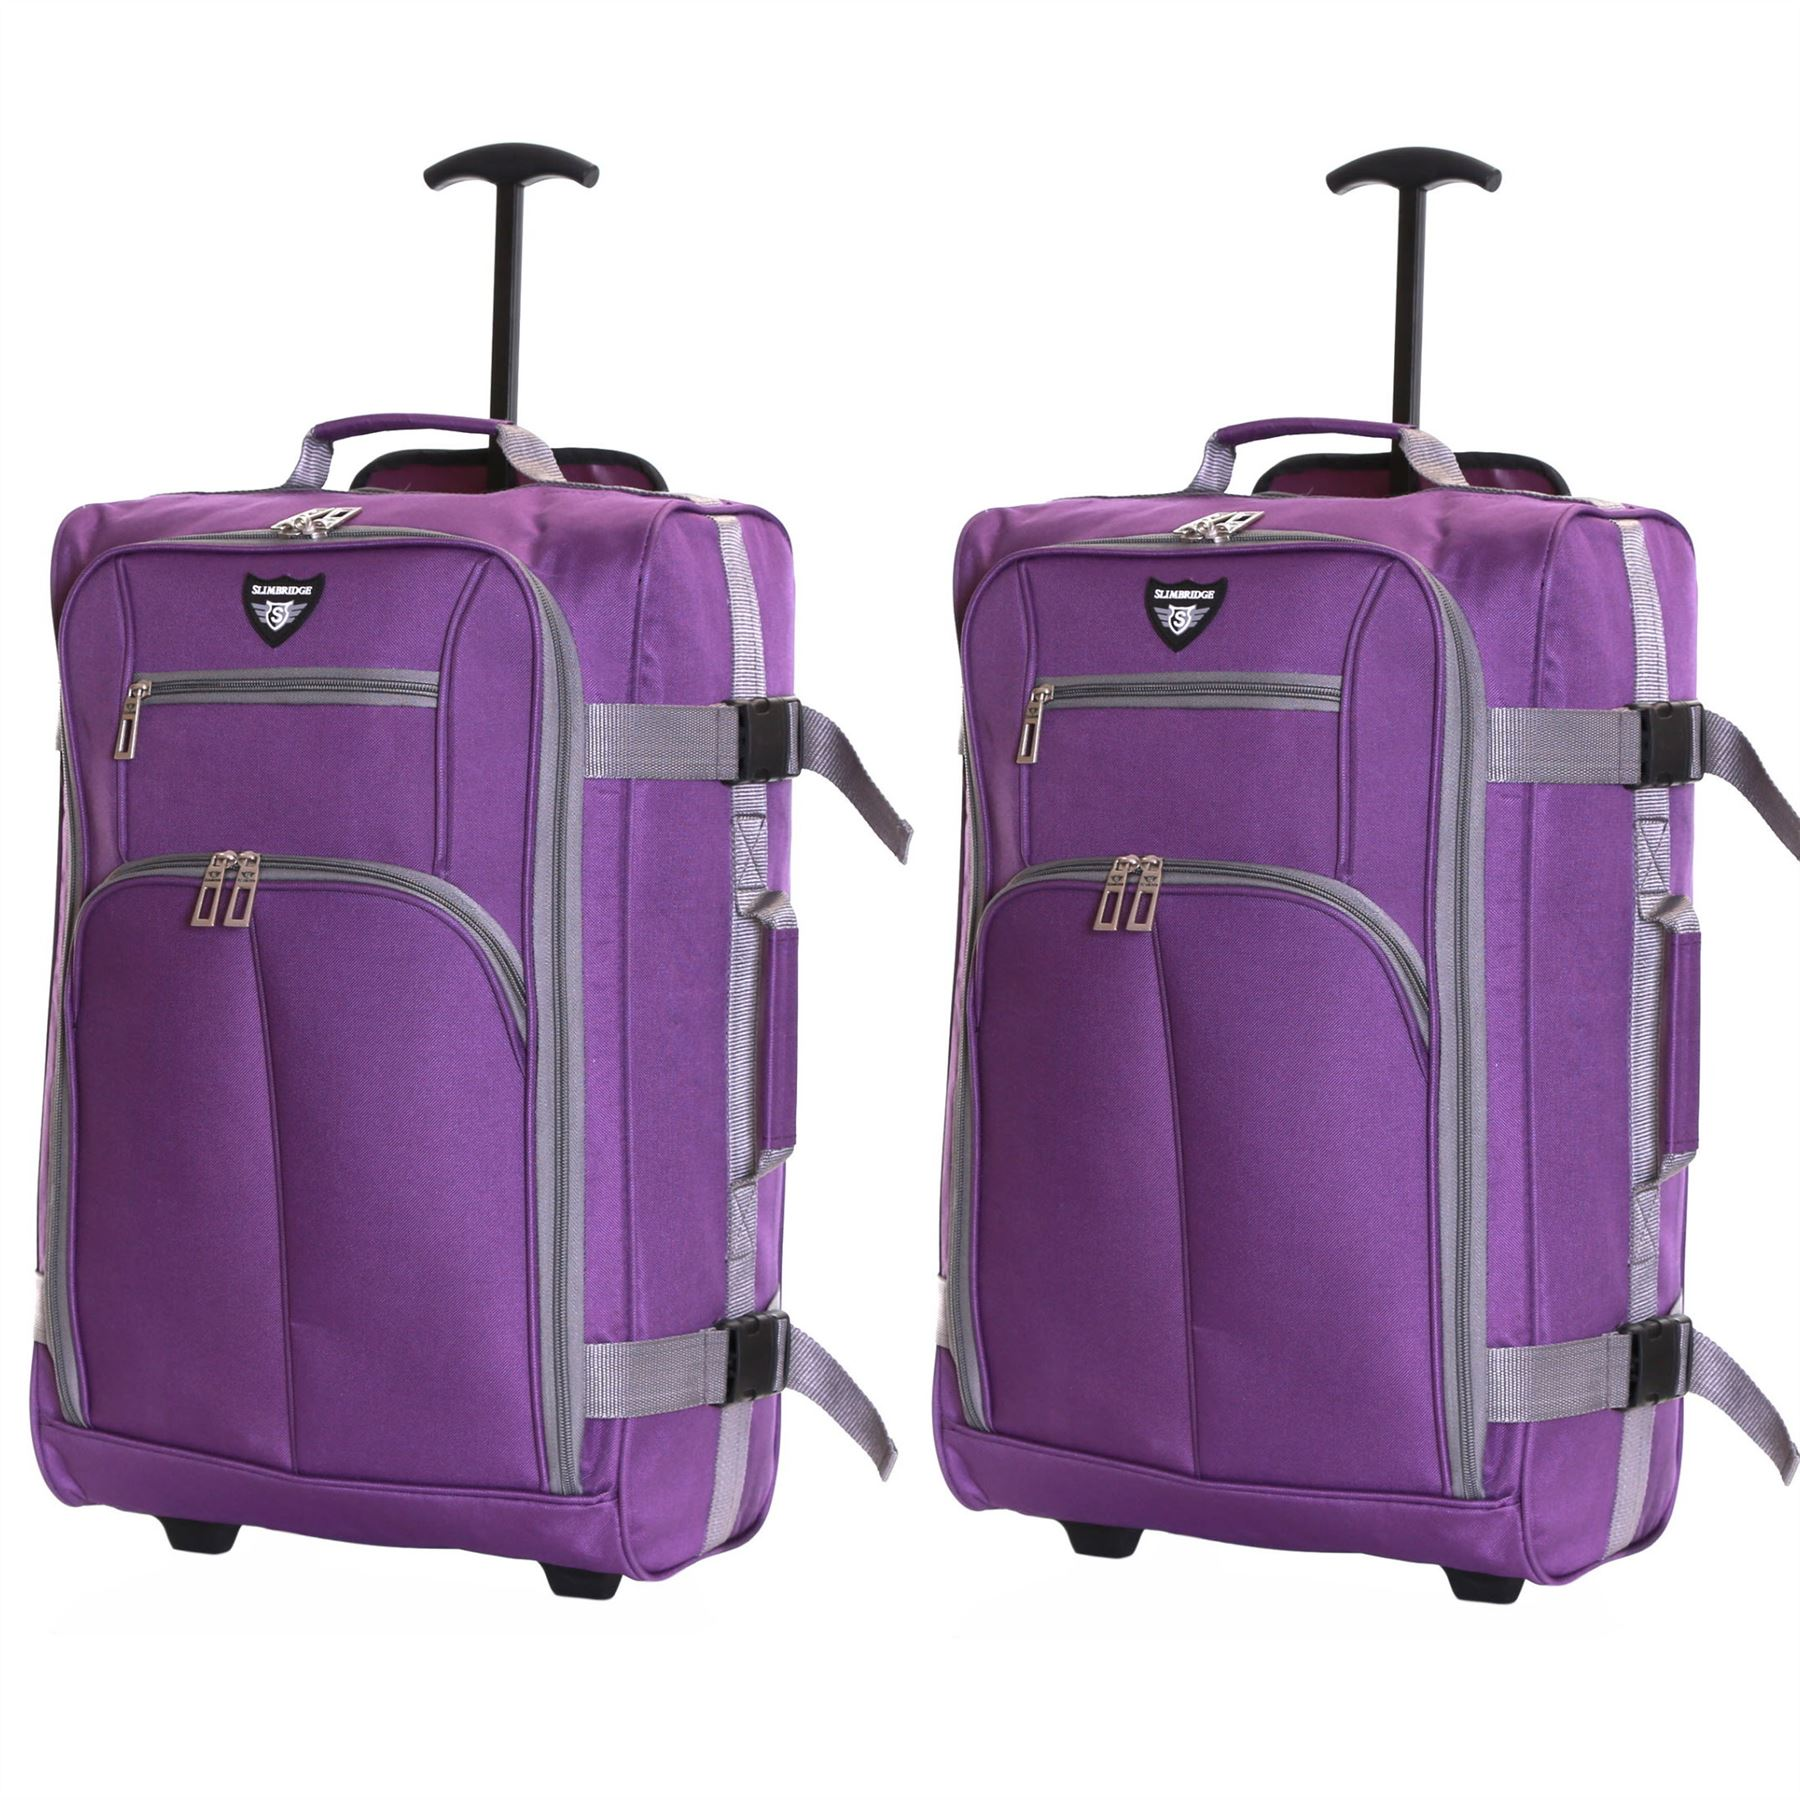 Ryanair-Easyjet-Set-of-2-Cabin-Approved-Hand-Trolley-Suitcases-Luggage-Case-Bags thumbnail 20